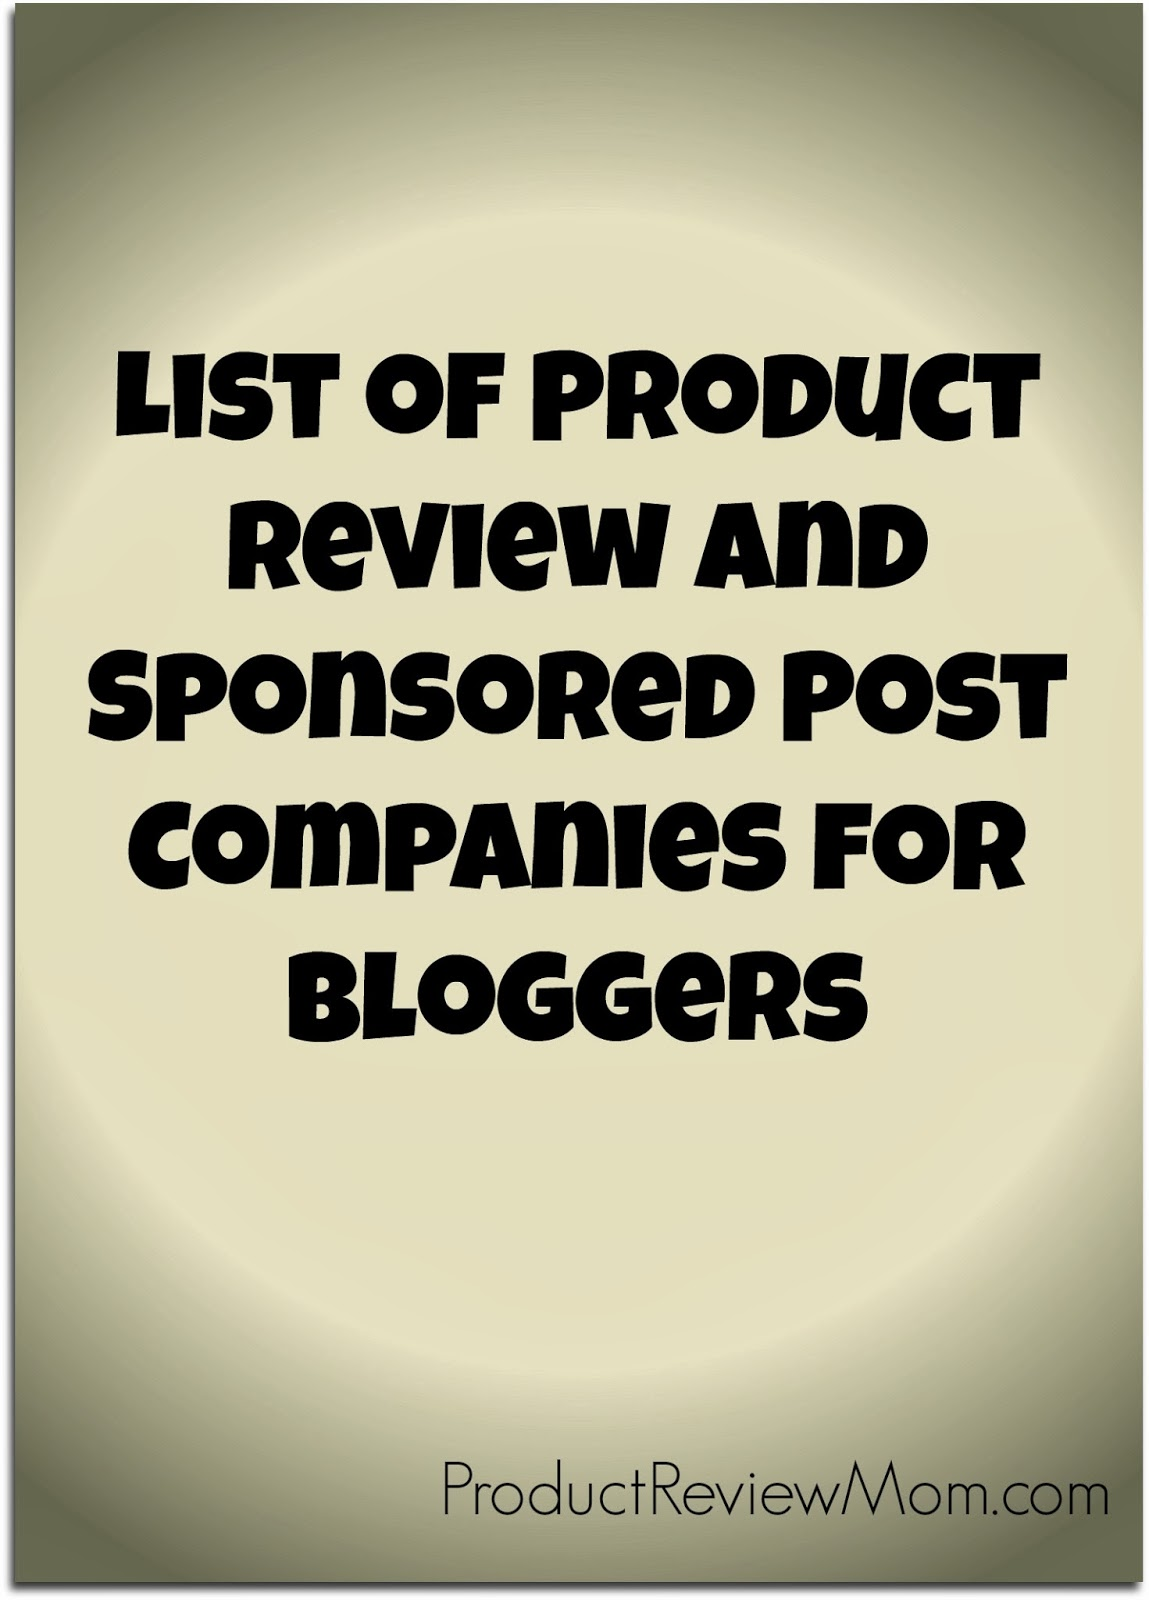 How to Become a Product Review/Sponsored Post Blogger